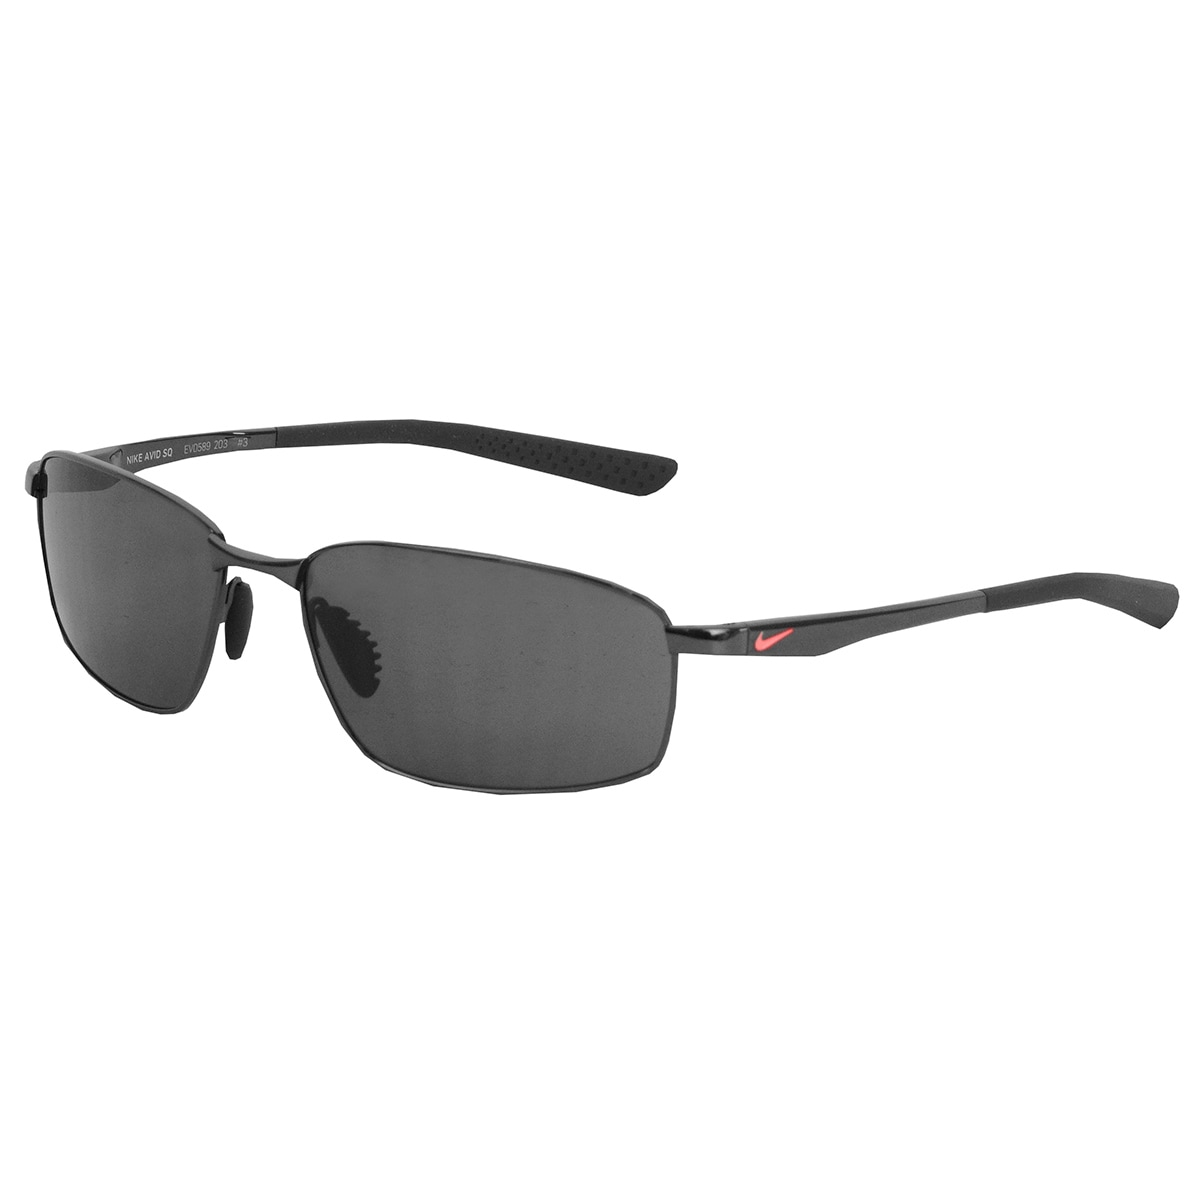 Great Nike SunglassesFind Shopping Men's Deals At OuwZiTPkX